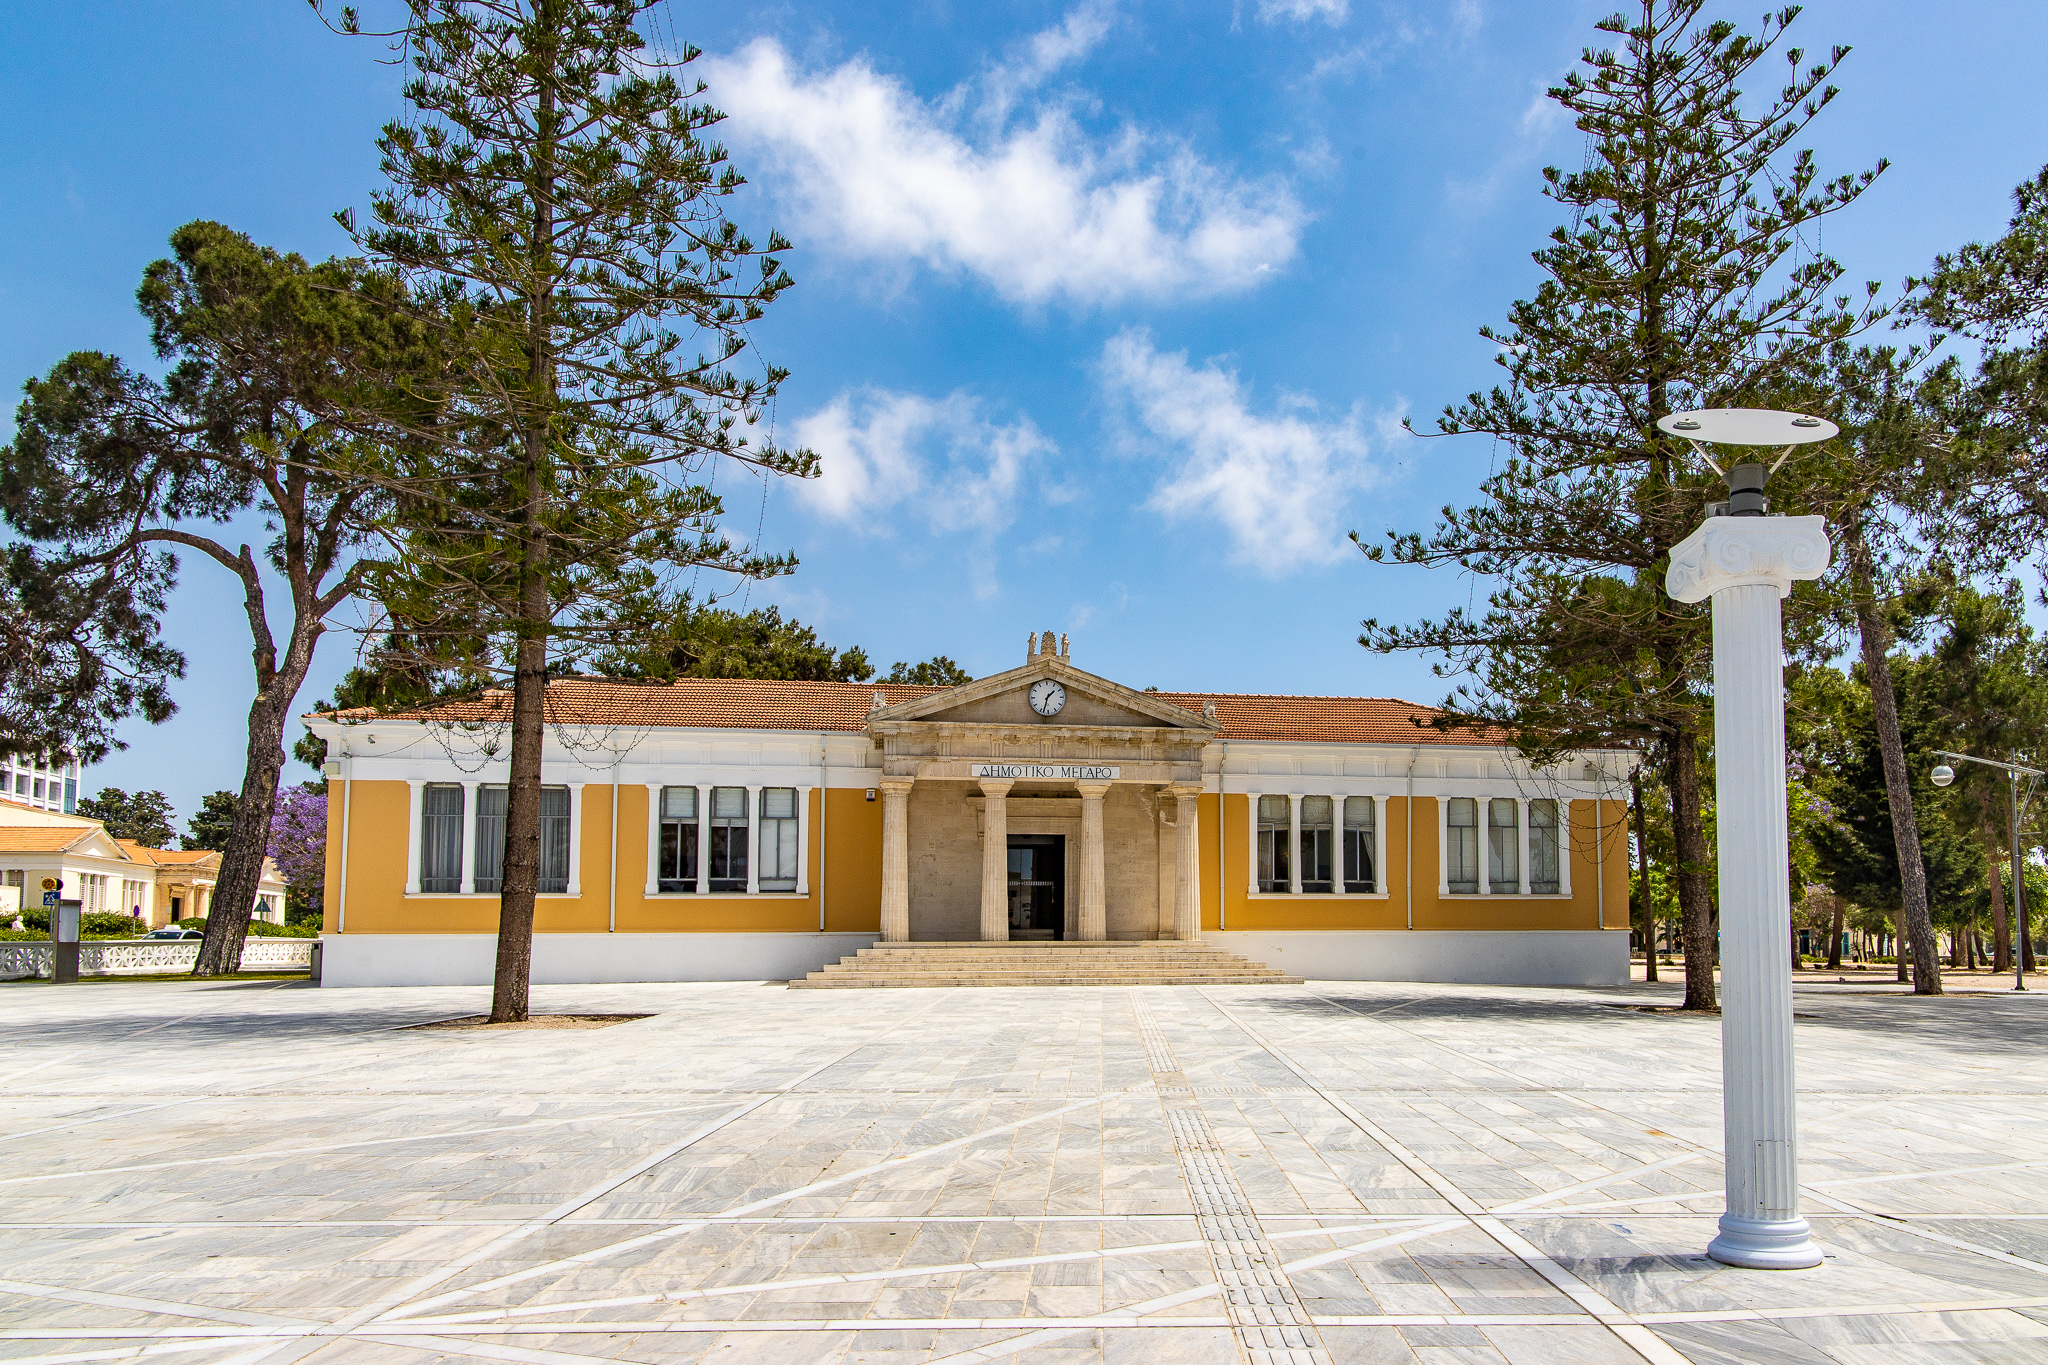 Paphos Town Hall